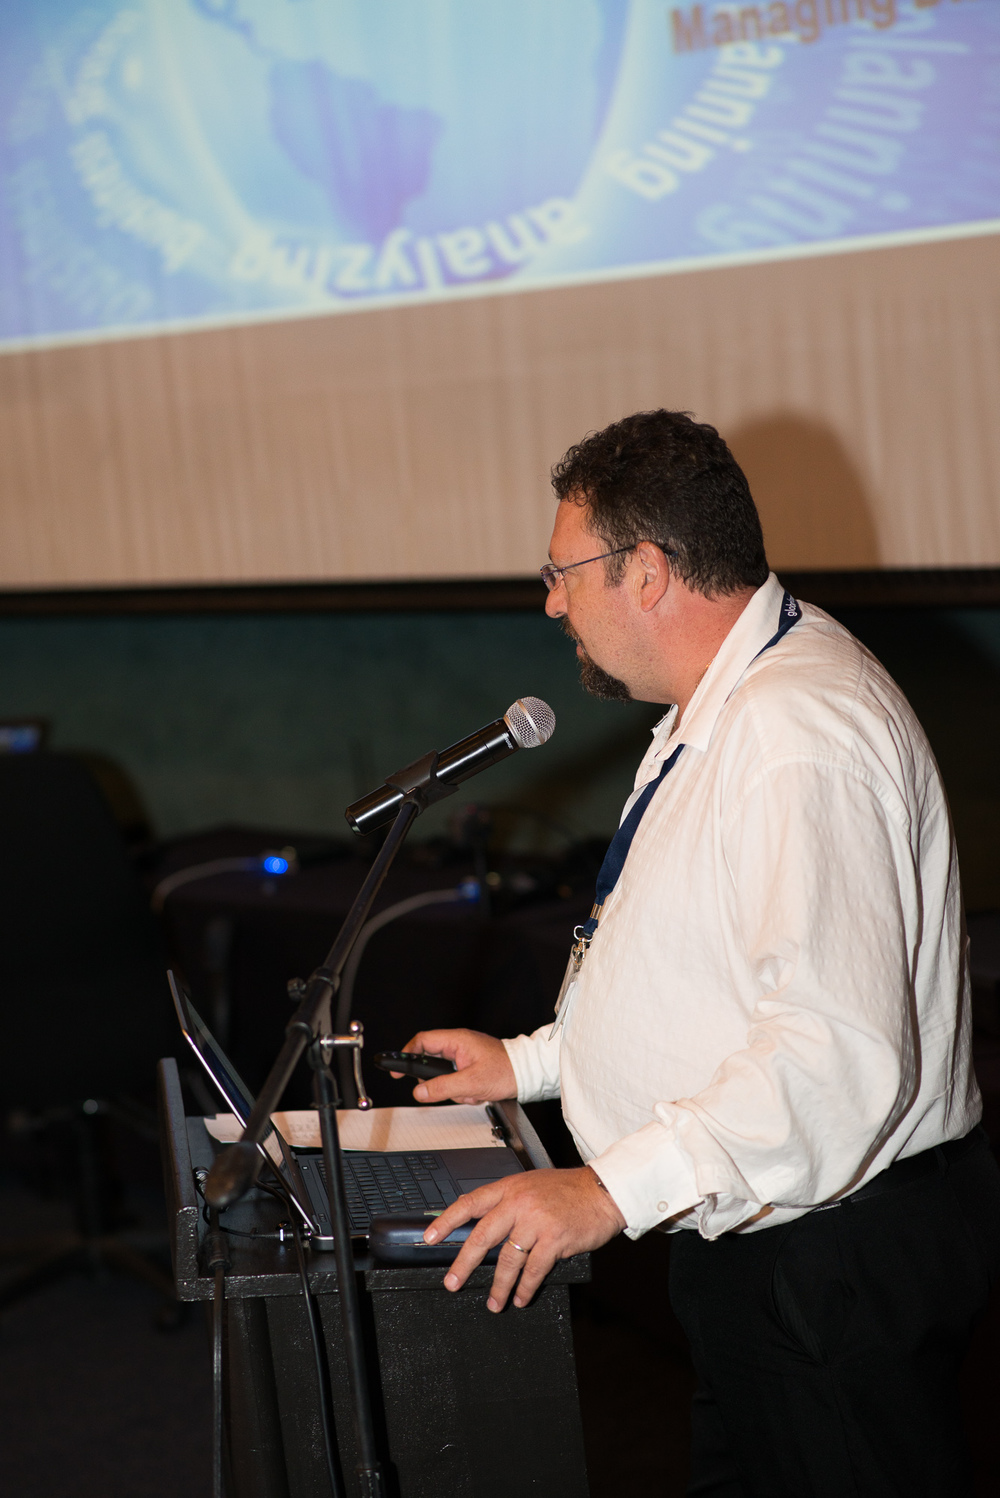 JHB2015-RoadShow (43 of 212).jpg